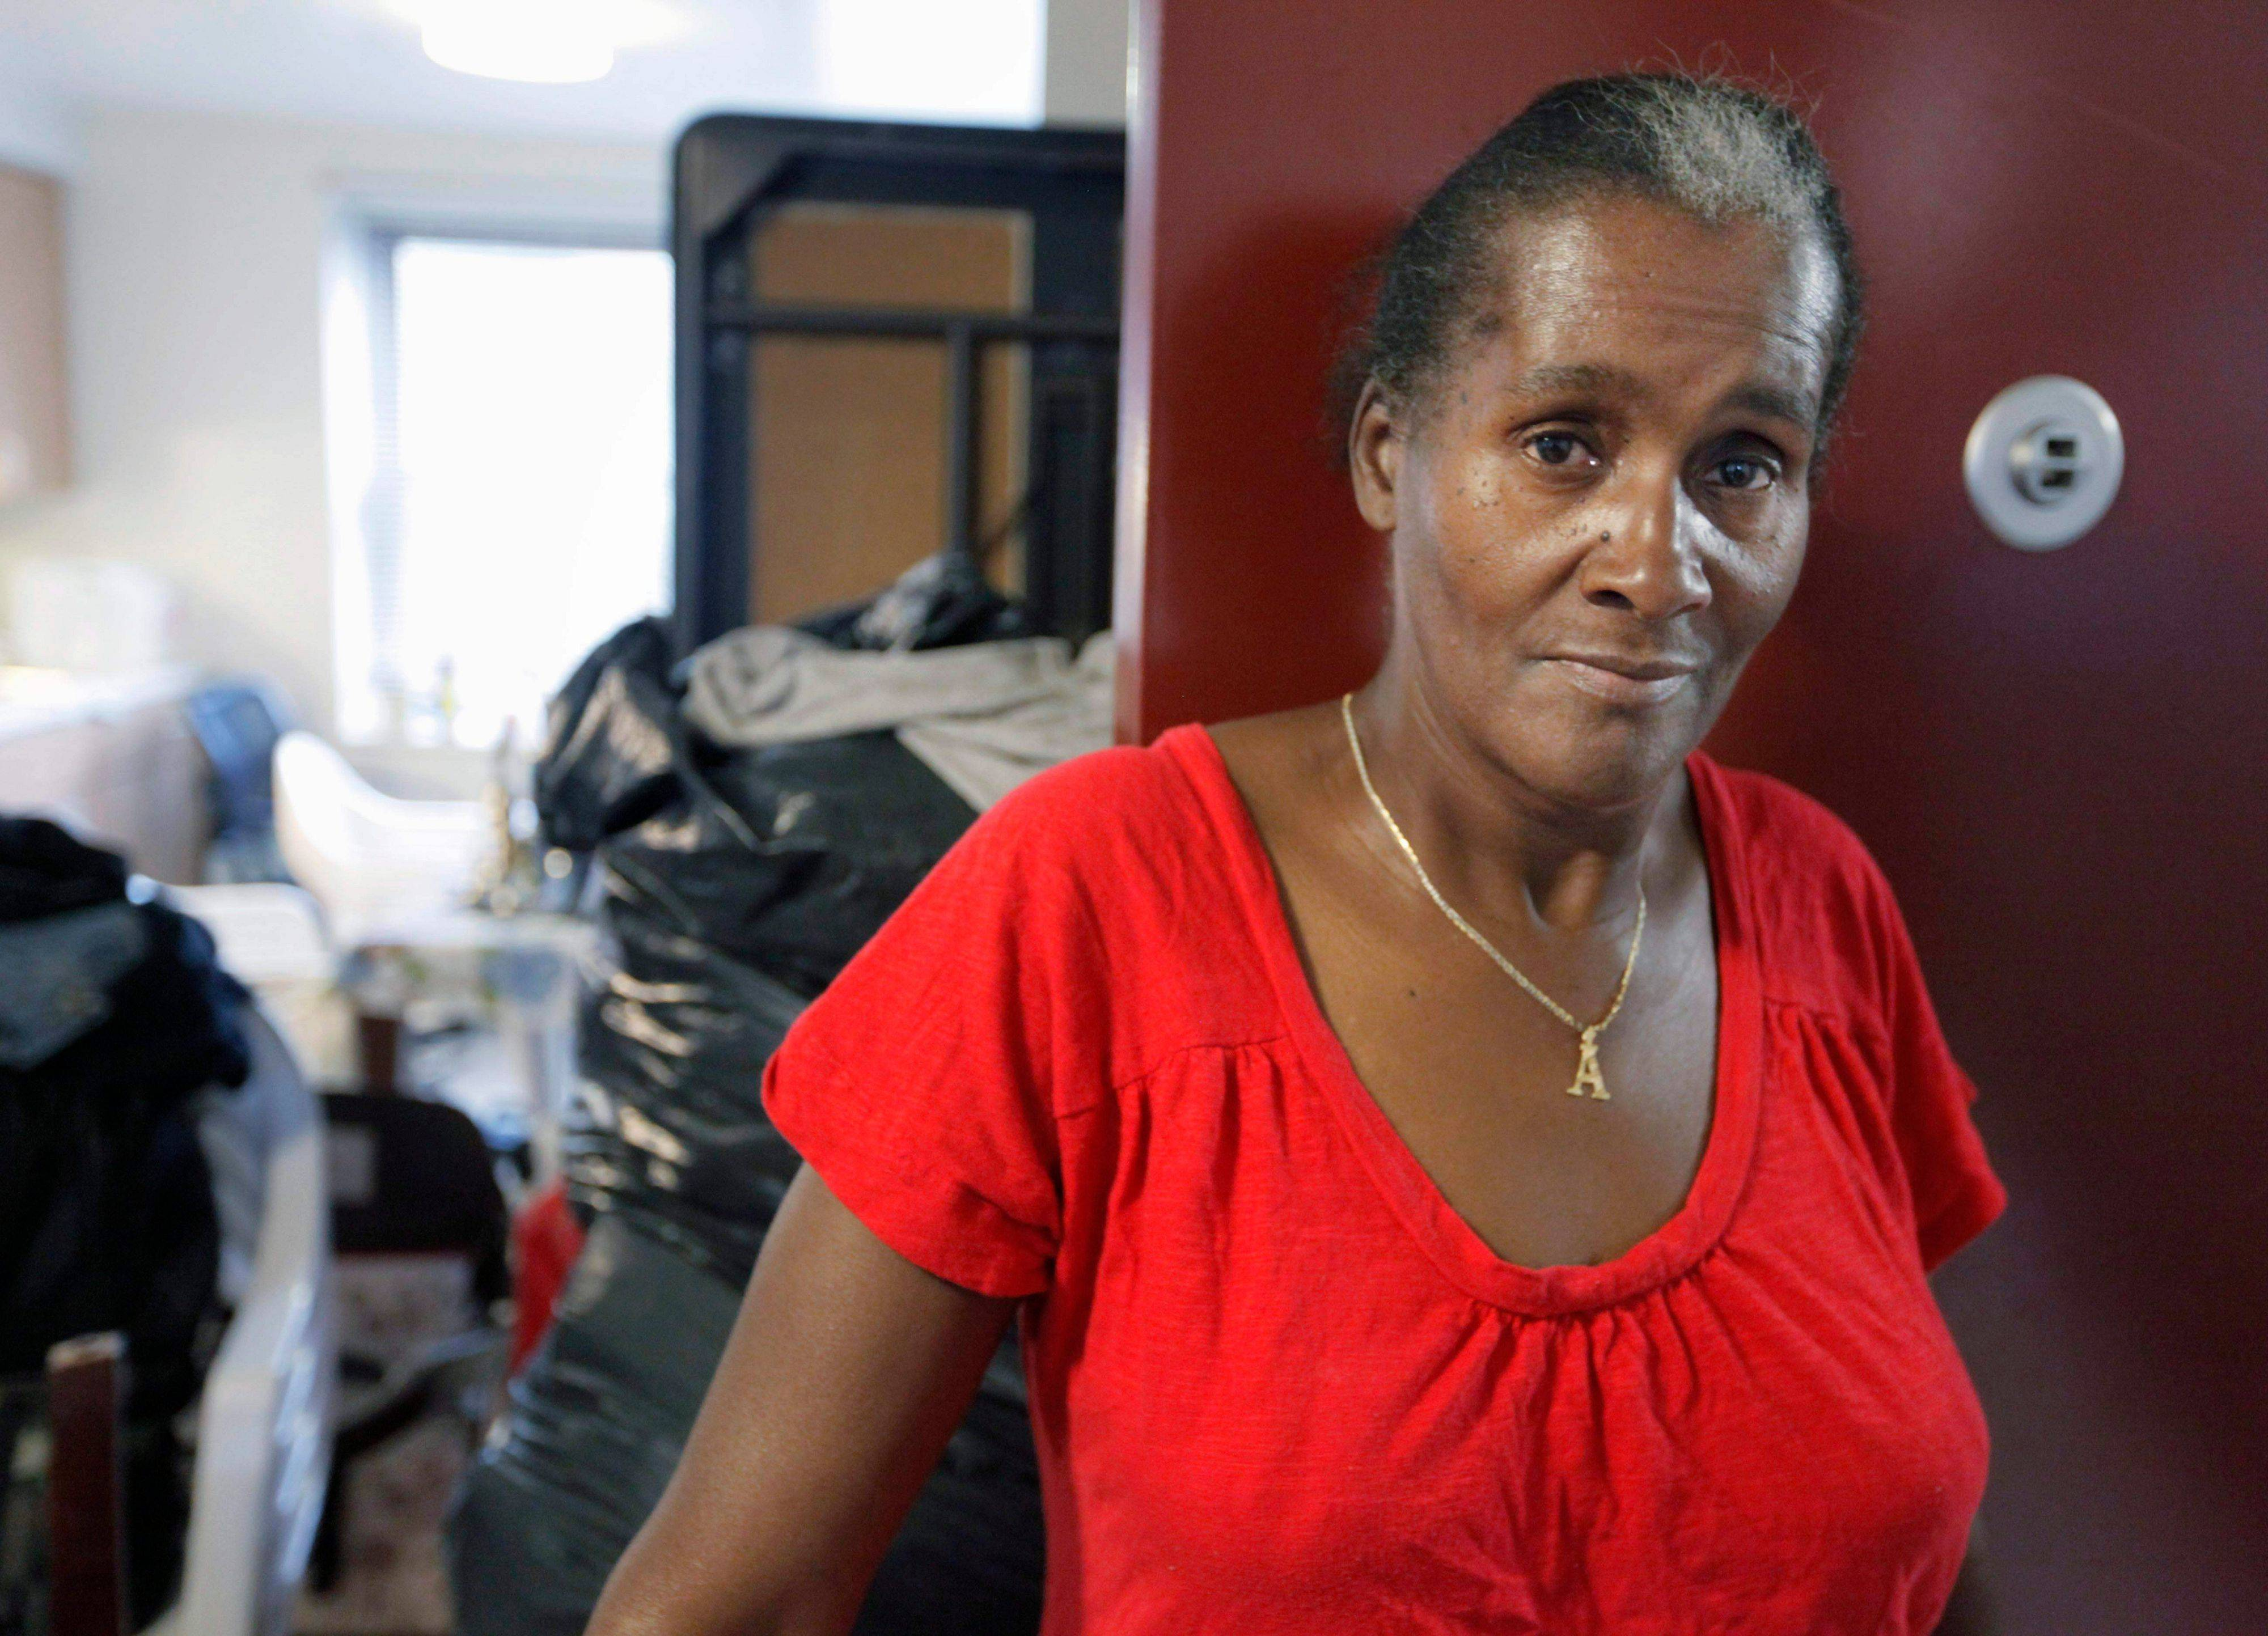 Local housing authorities paid for Annie Ricks, 55, to relocate to Chicago's South Side last year as part of its demolition plans for high-rise tenements, but Ricks says her new neighborhood is worse.